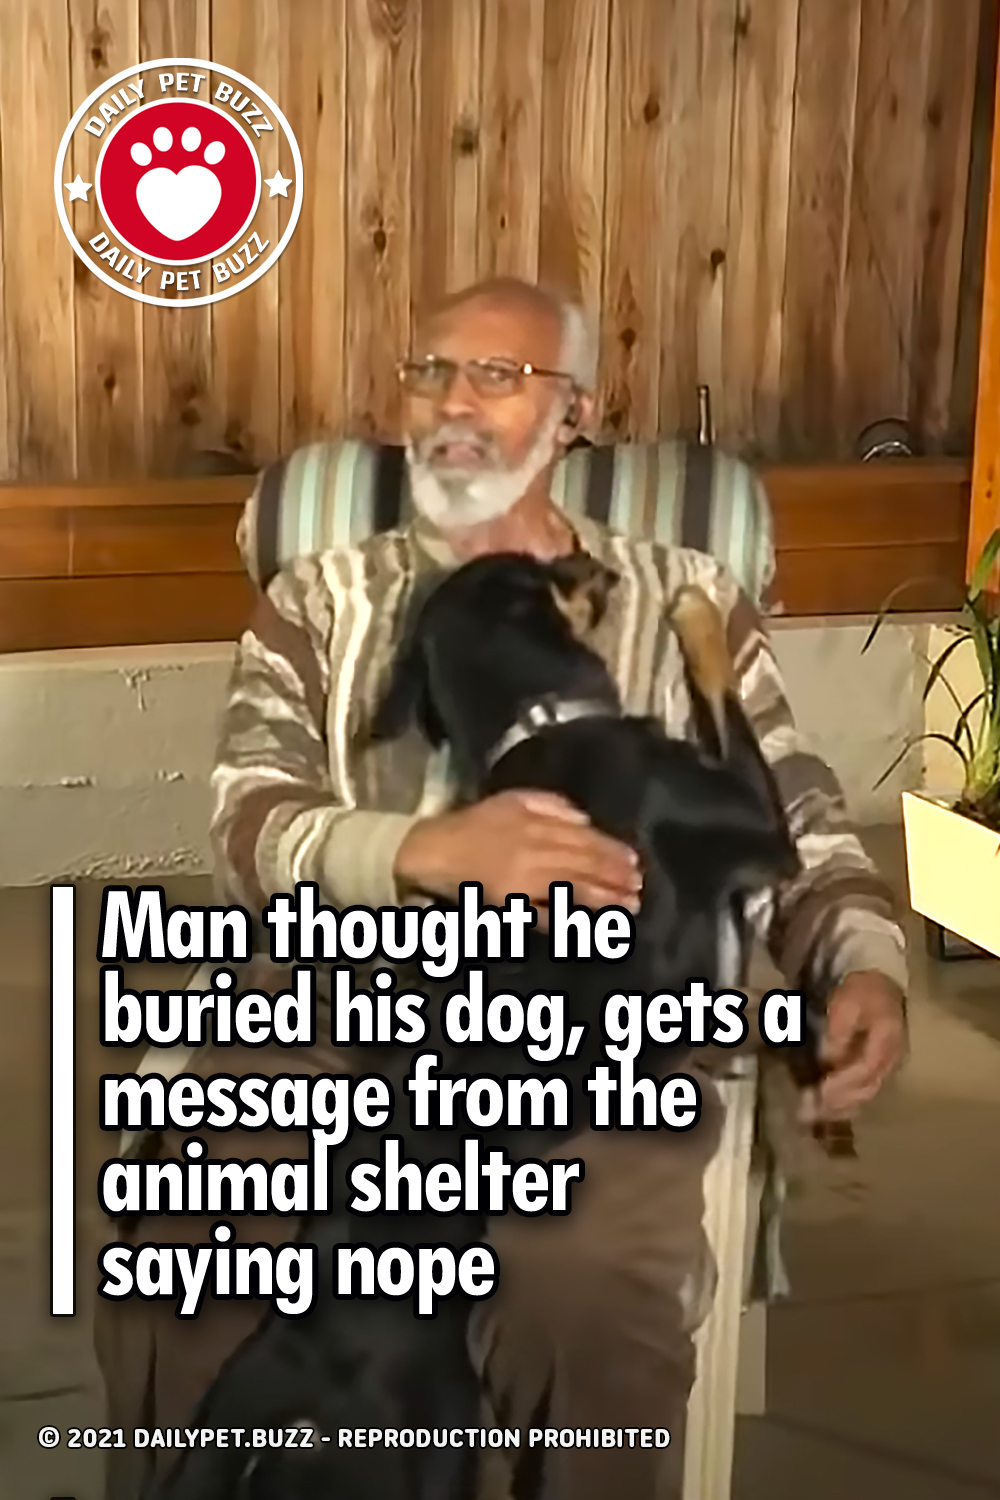 Man thought he buried his dog, gets a message from the animal shelter saying nope